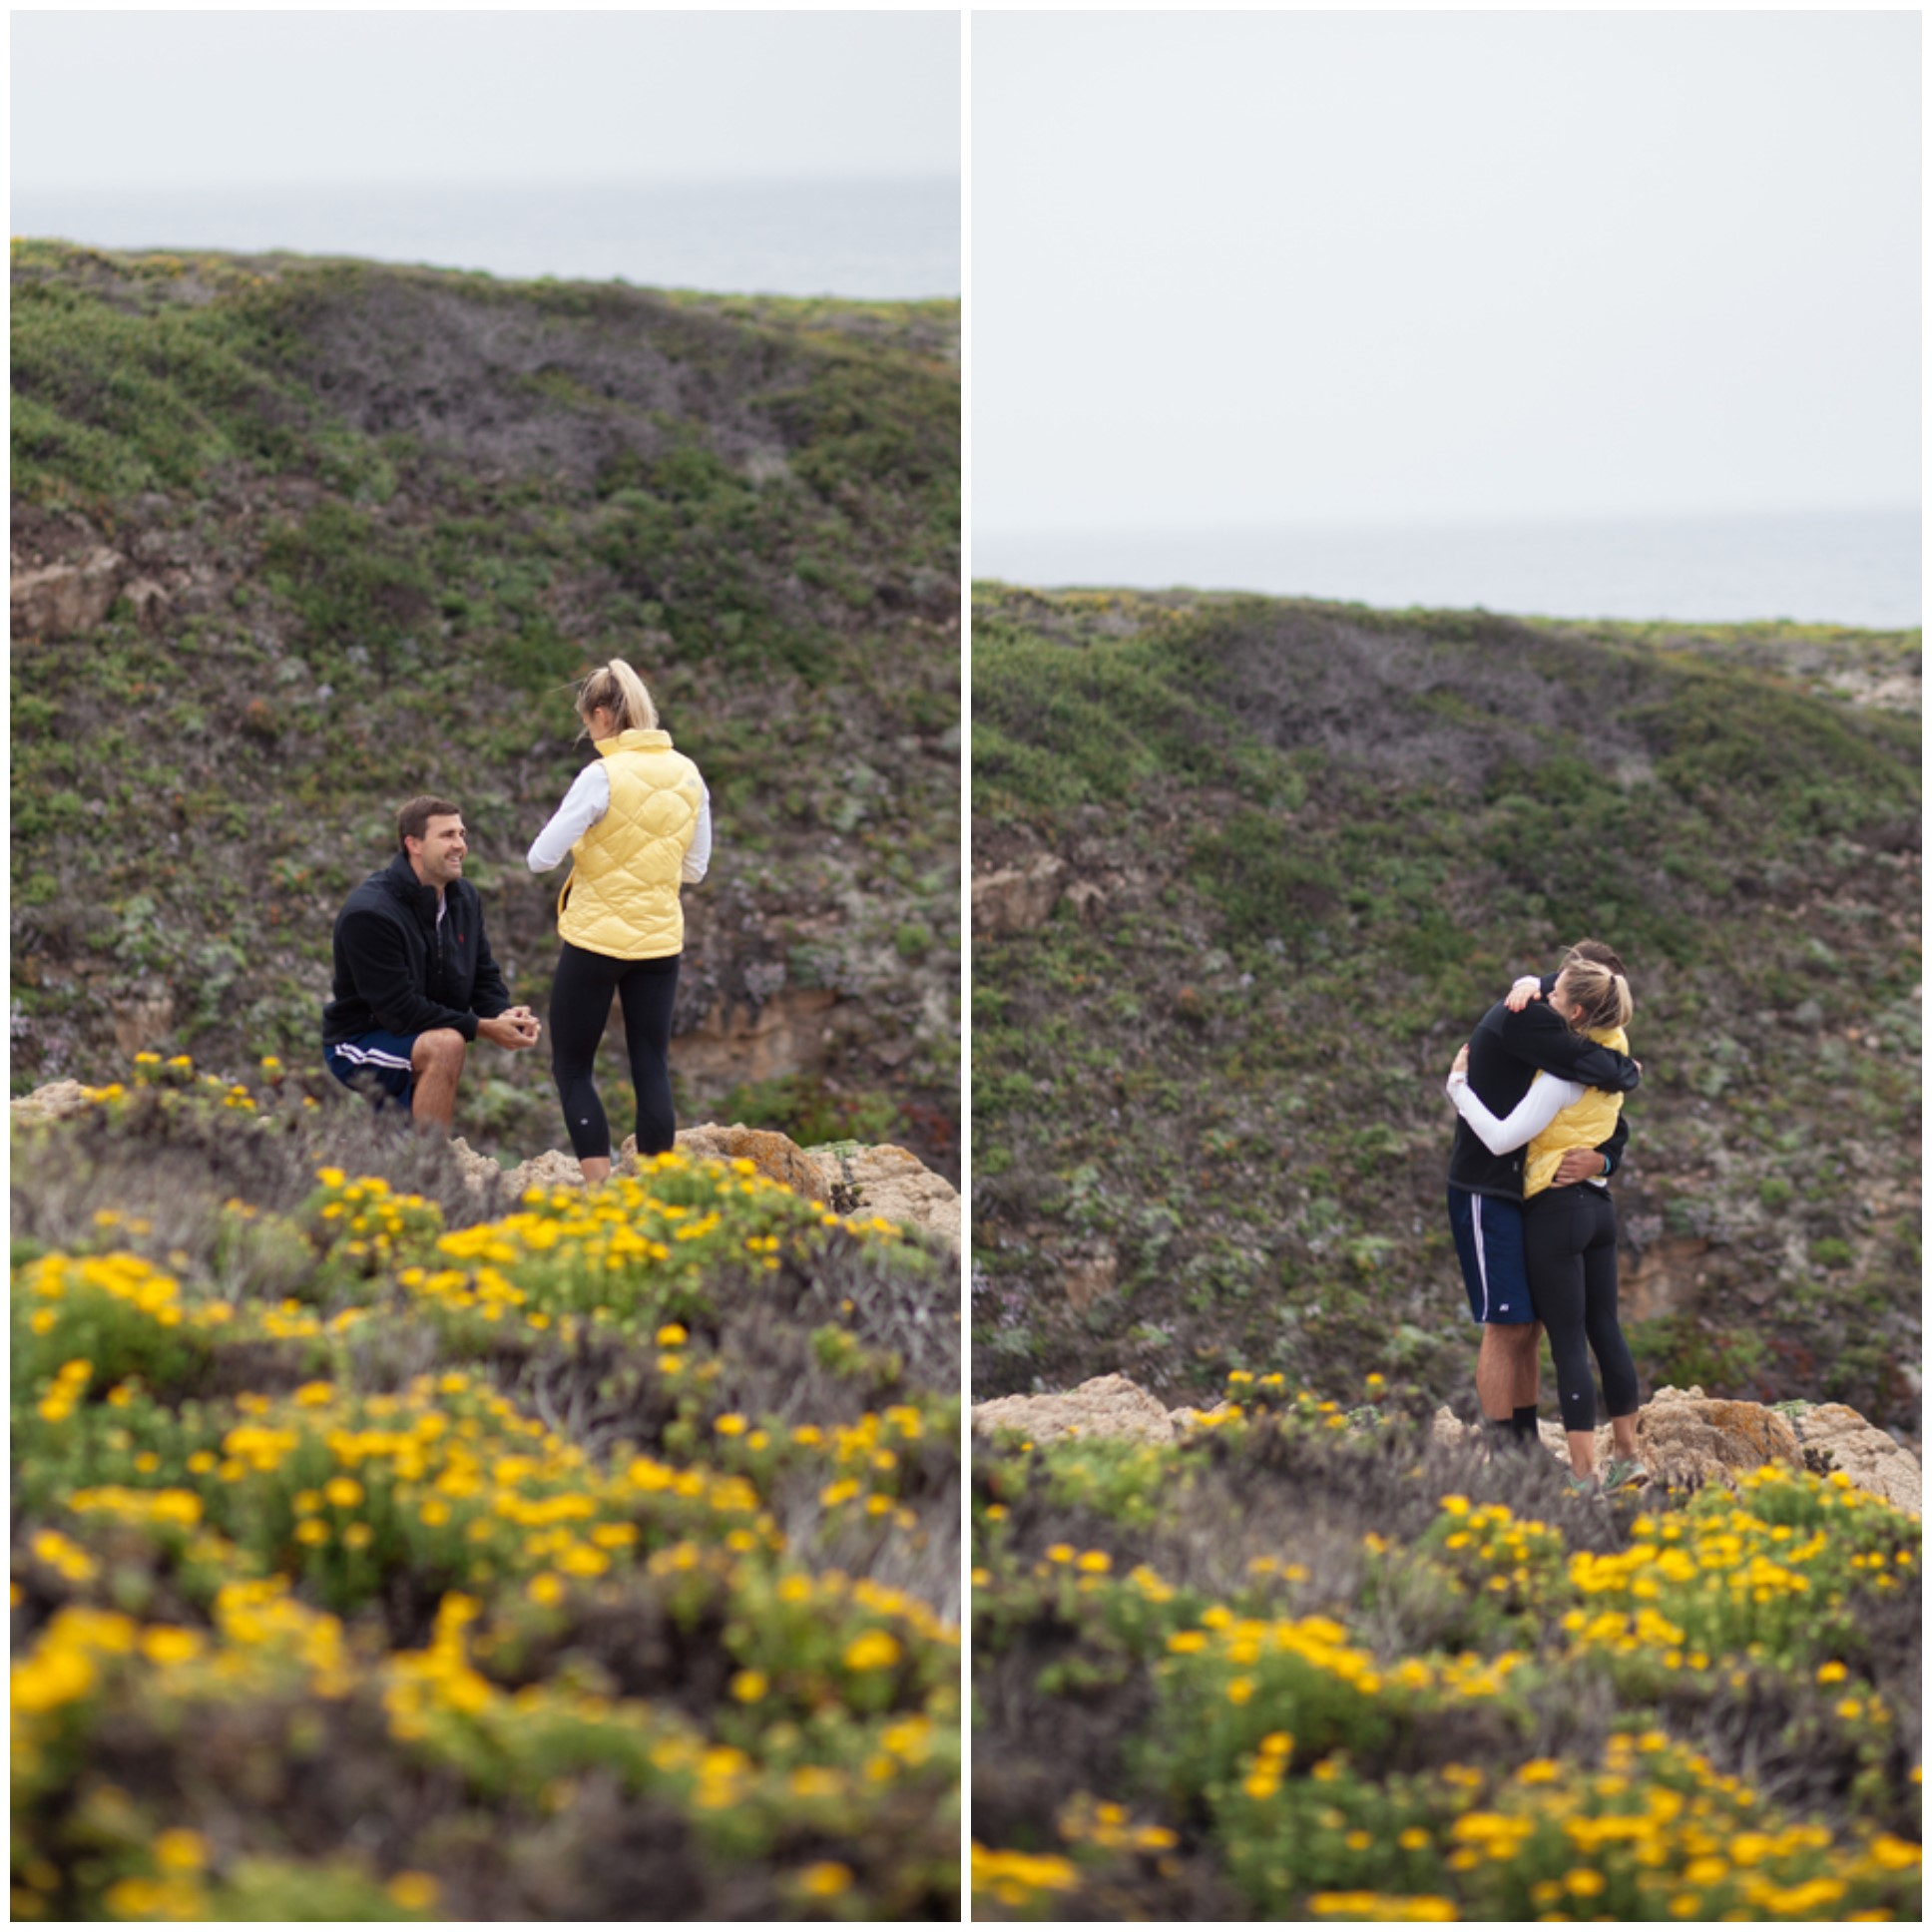 Image 10 of Matt and Stacey's Hiking Proposal at Big Sur